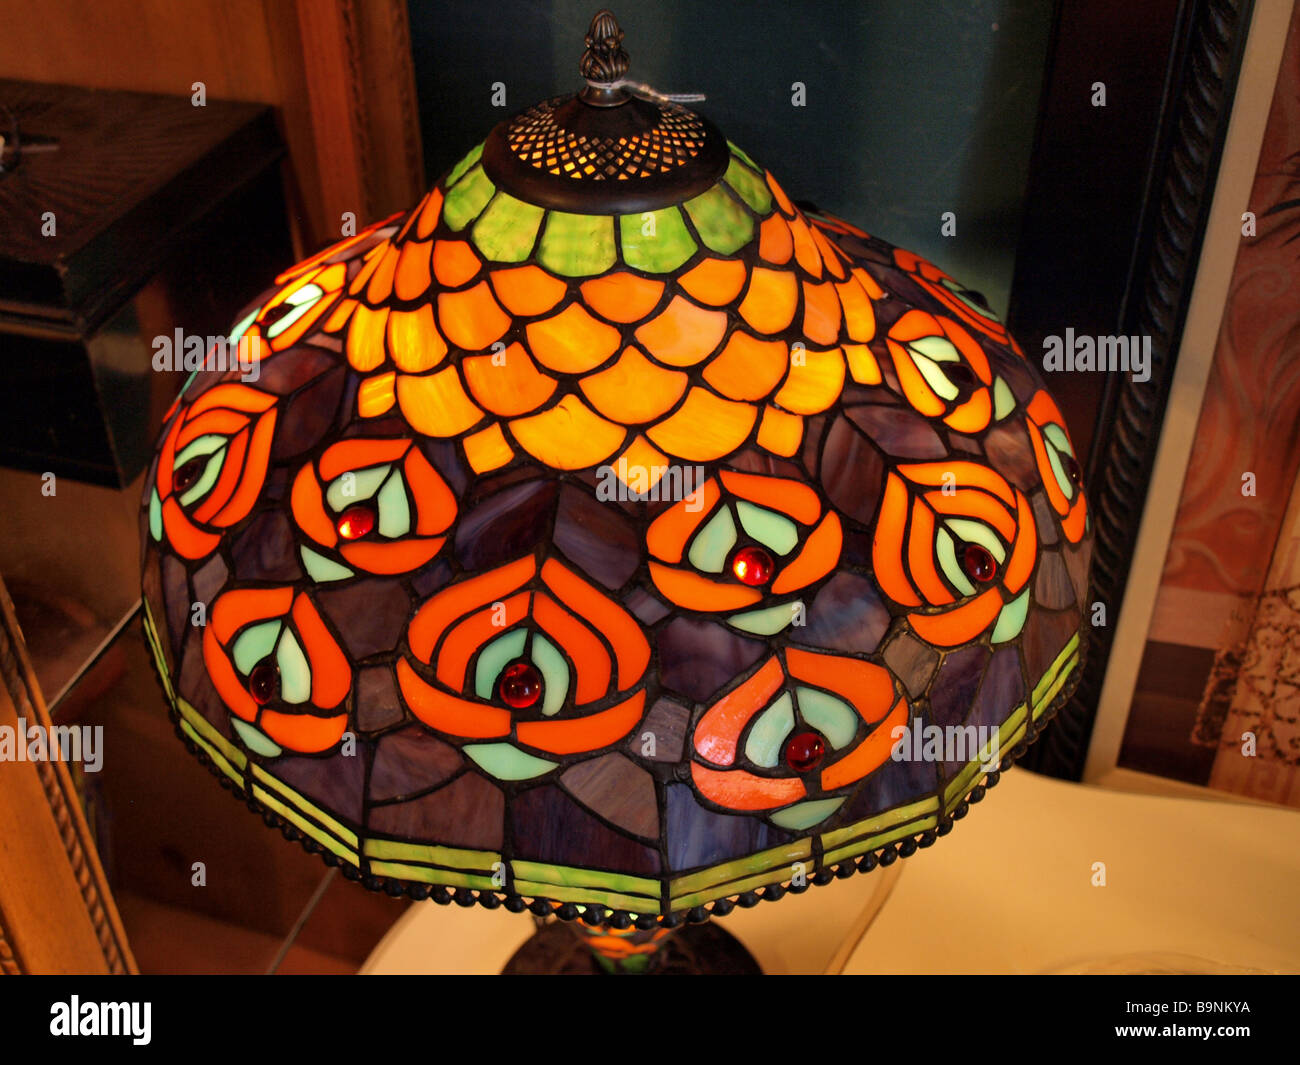 Glass Lamp Art Art Deco Style Stained Glass Lamp Shade From Above With Images Of